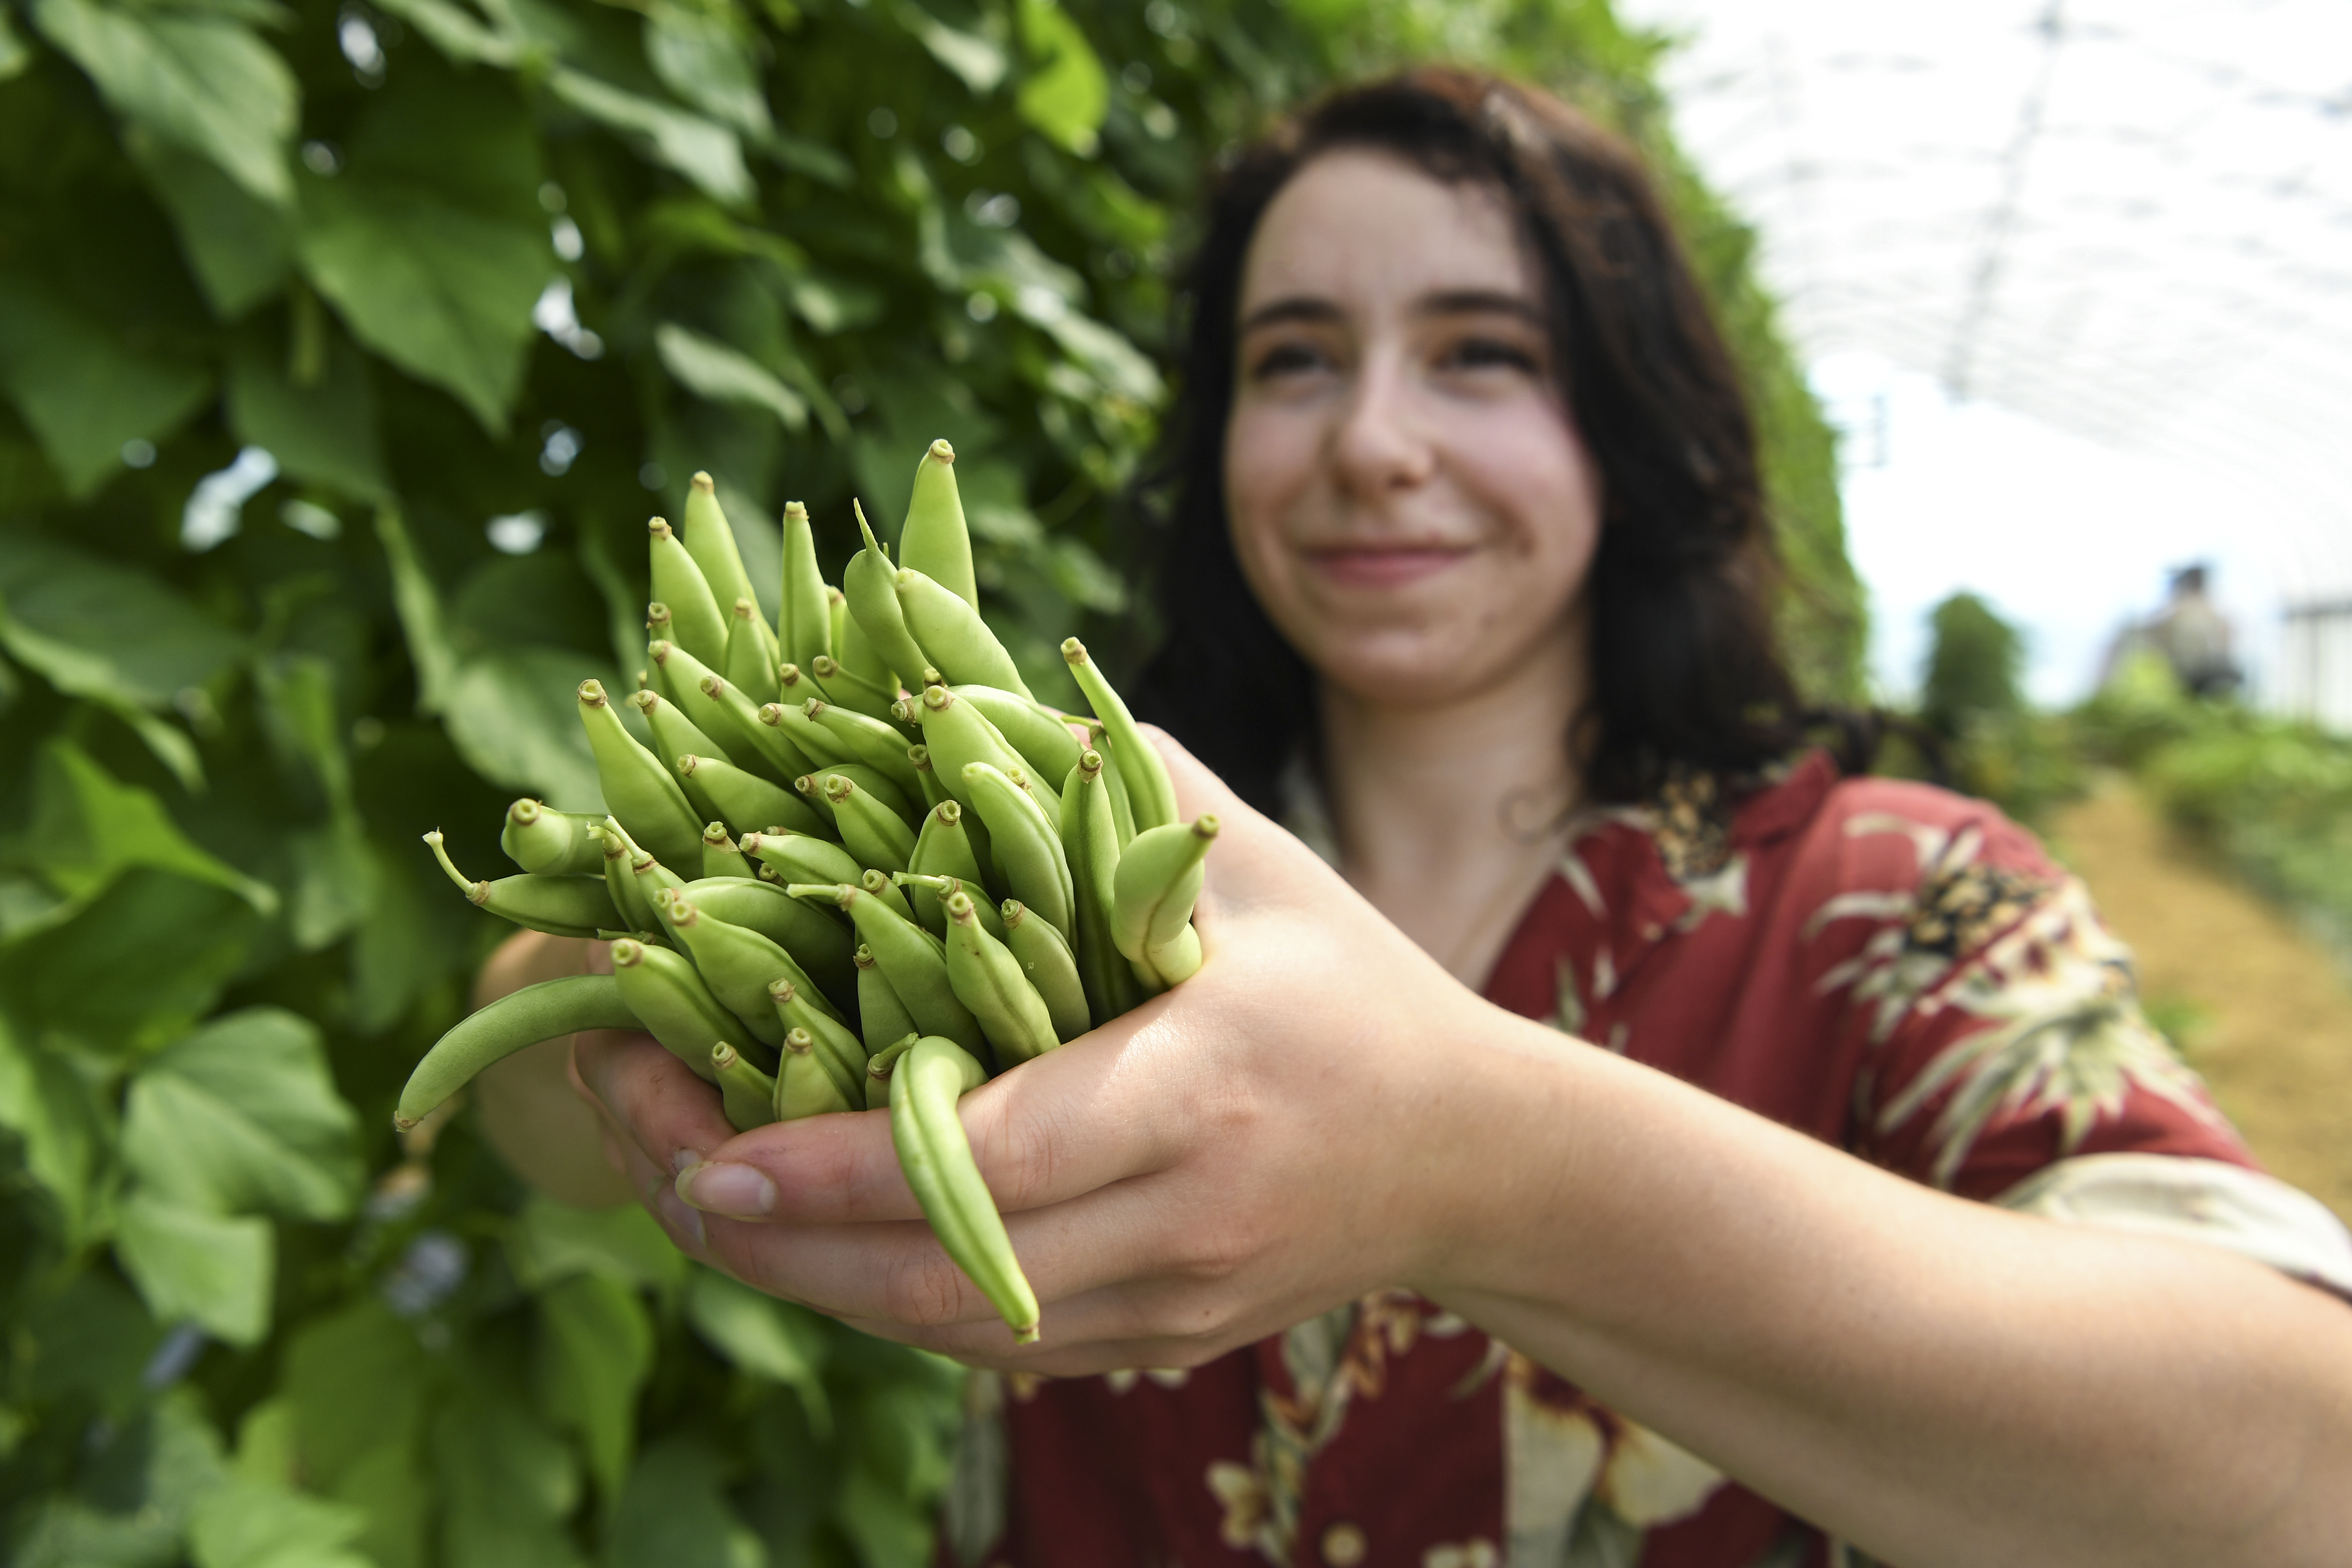 a woman with dark hair holds hands full of green beans